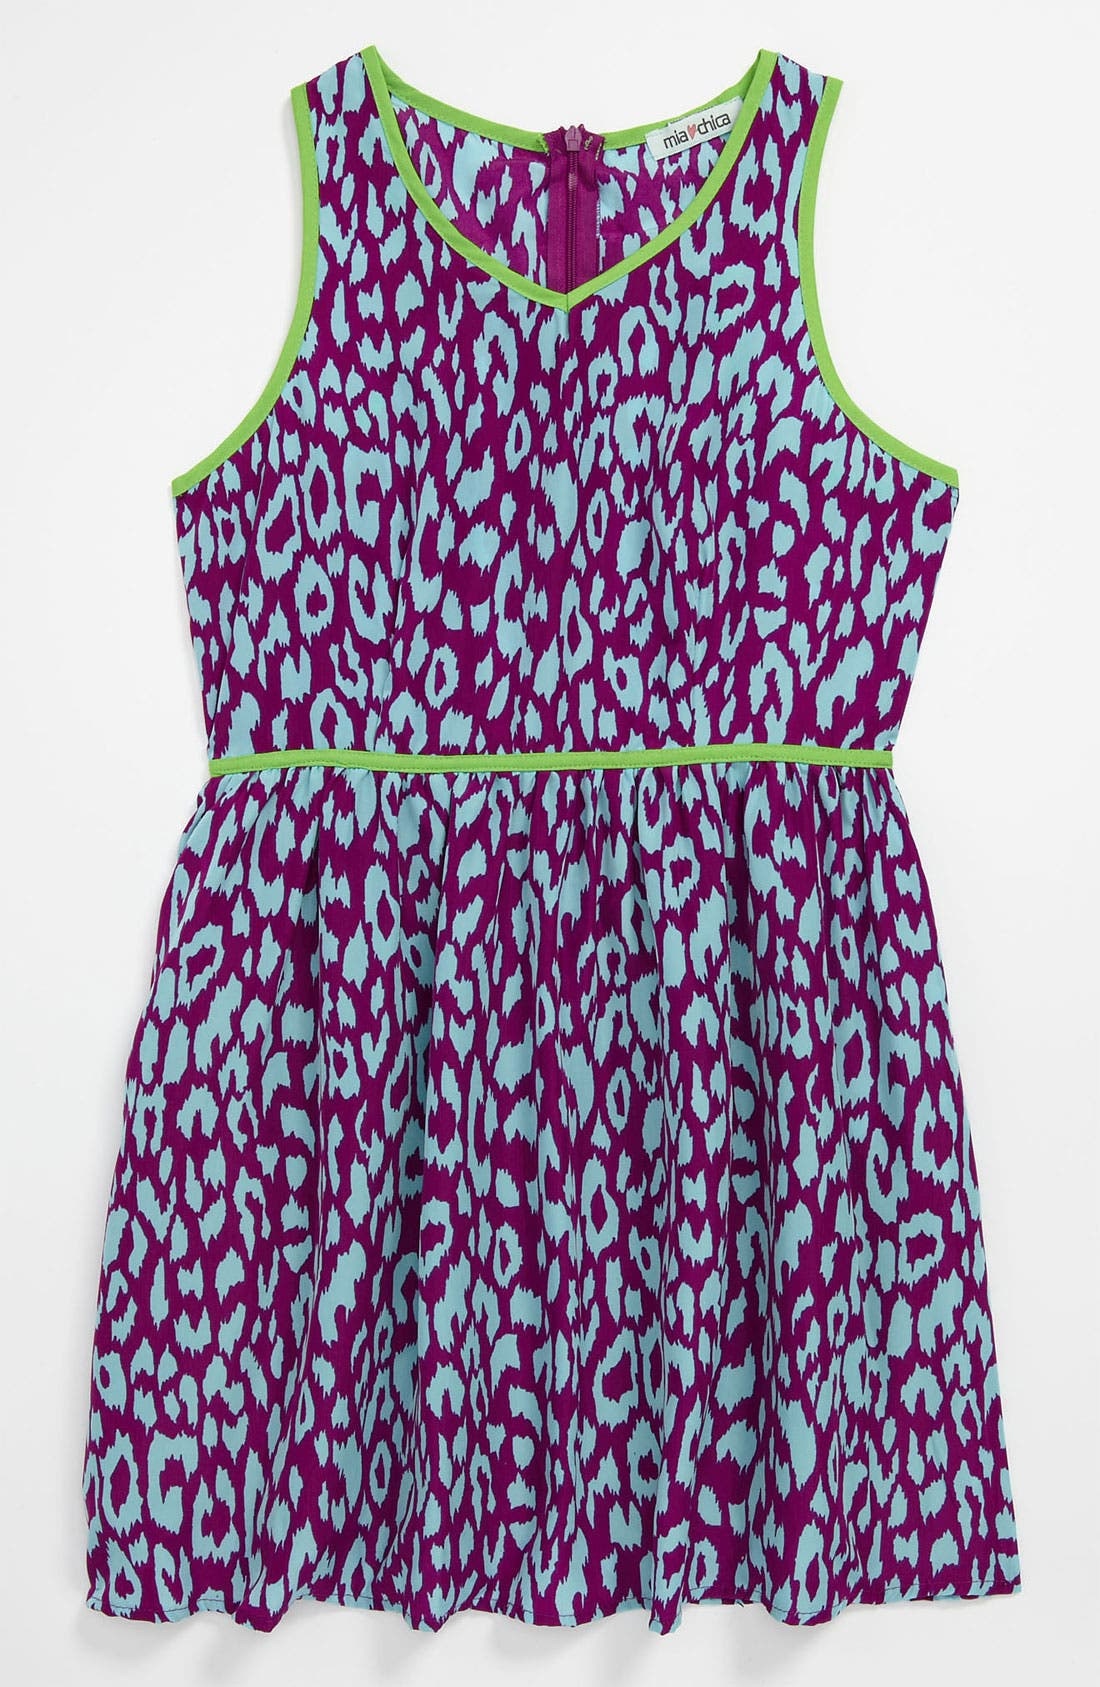 Alternate Image 1 Selected - Mia Chica Leopard Dress (Little Girls & Big Girls)